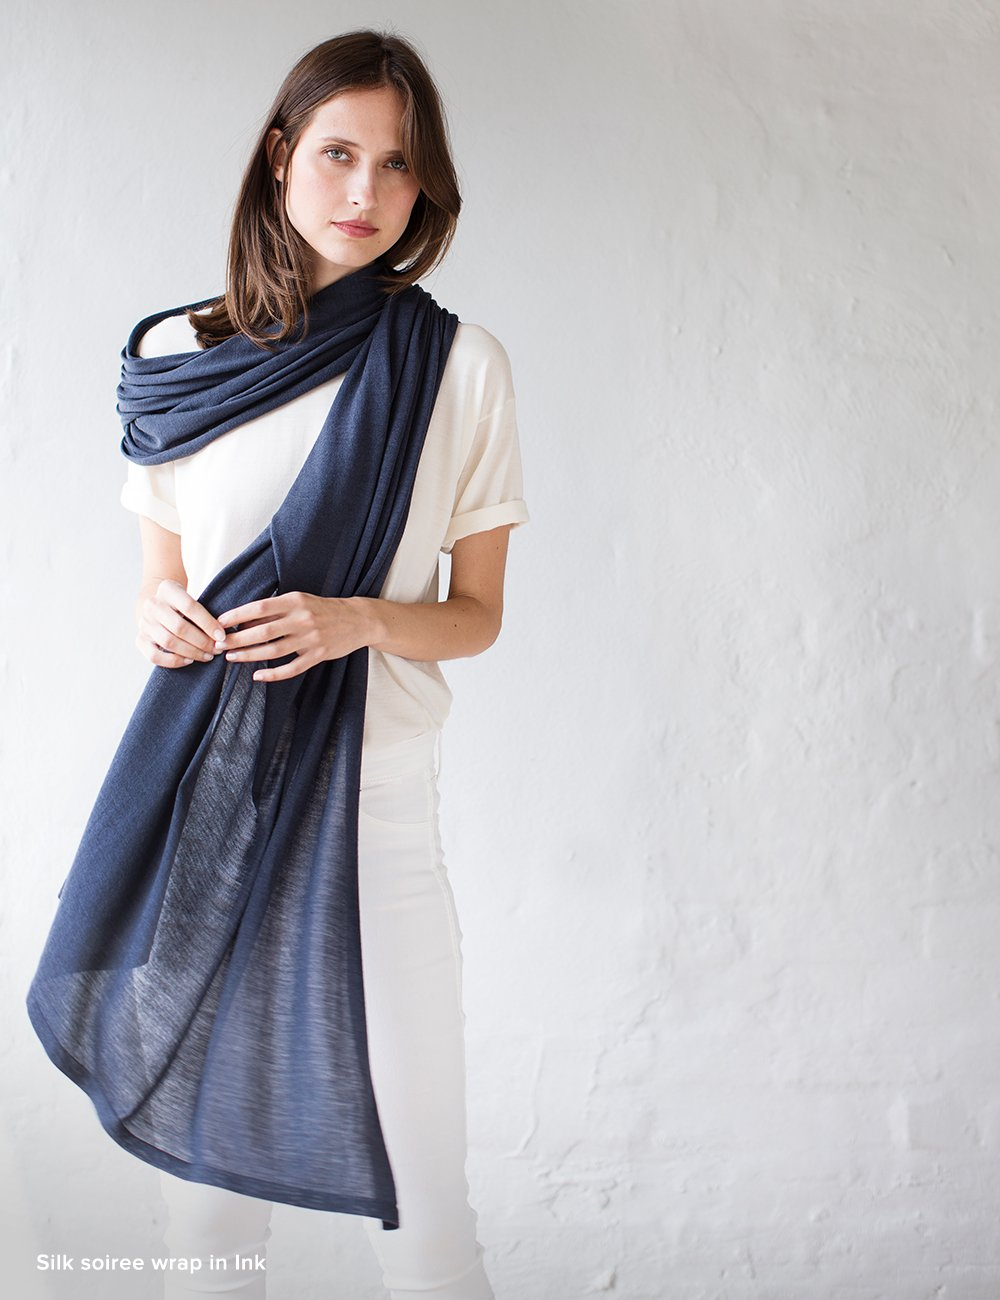 Australian Superfine Merino Wrap Travel Size - Silk Ink